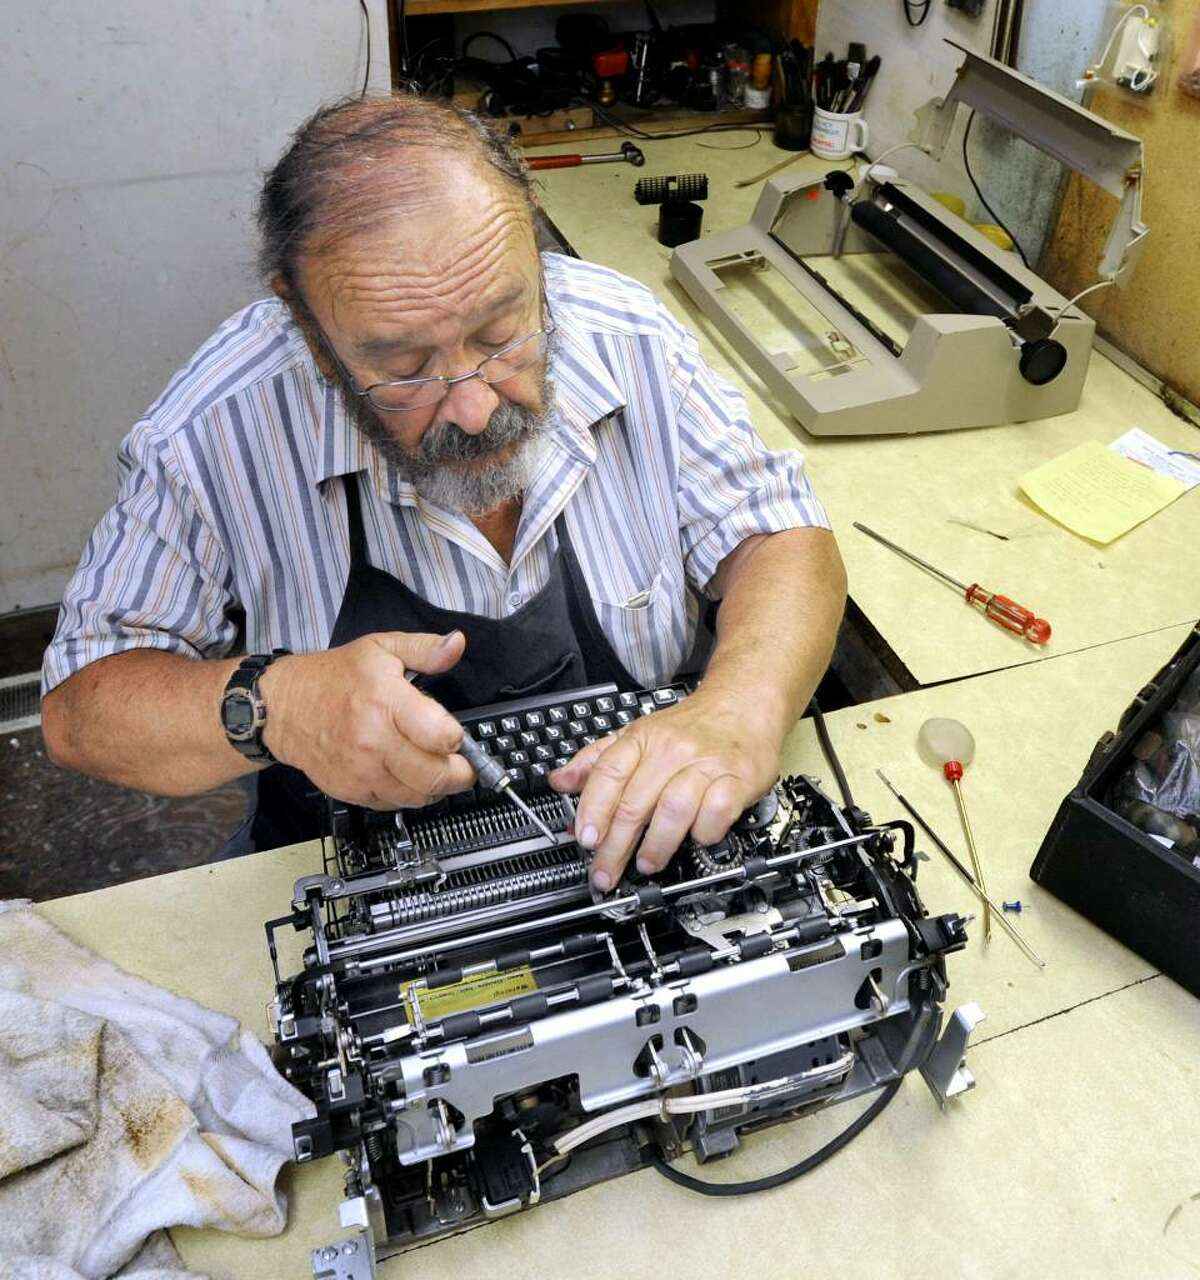 David Morrill gives a tune-up to a 1972 IBM Selectric typewriter that is still used by its owner.